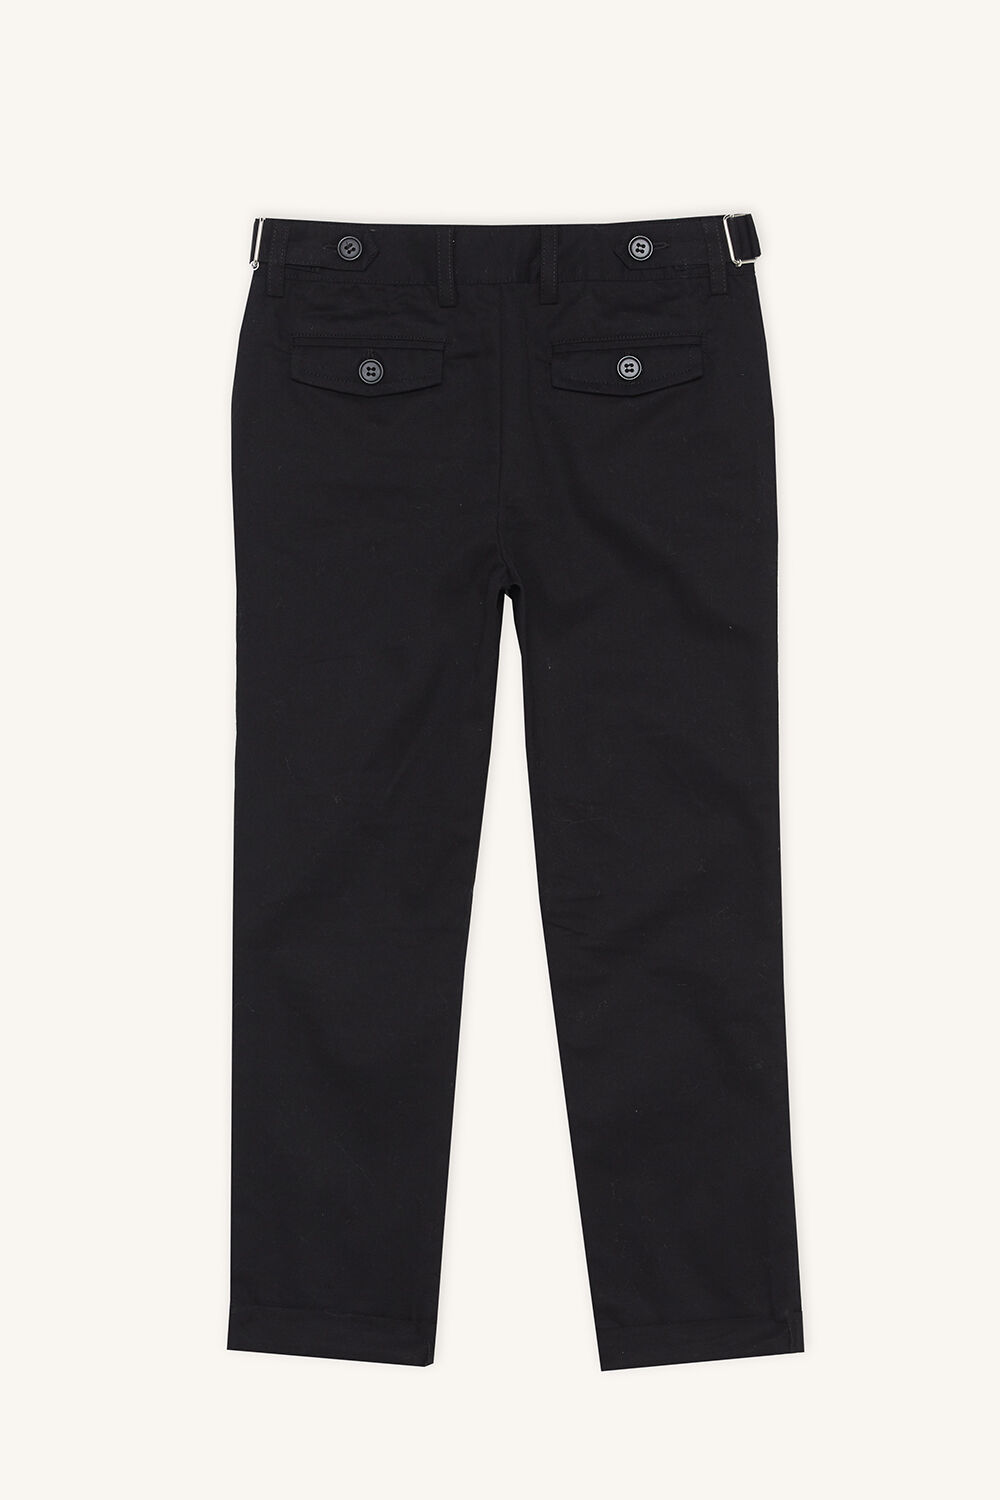 ASHTON BUCKLE CHINO in colour PEWTER